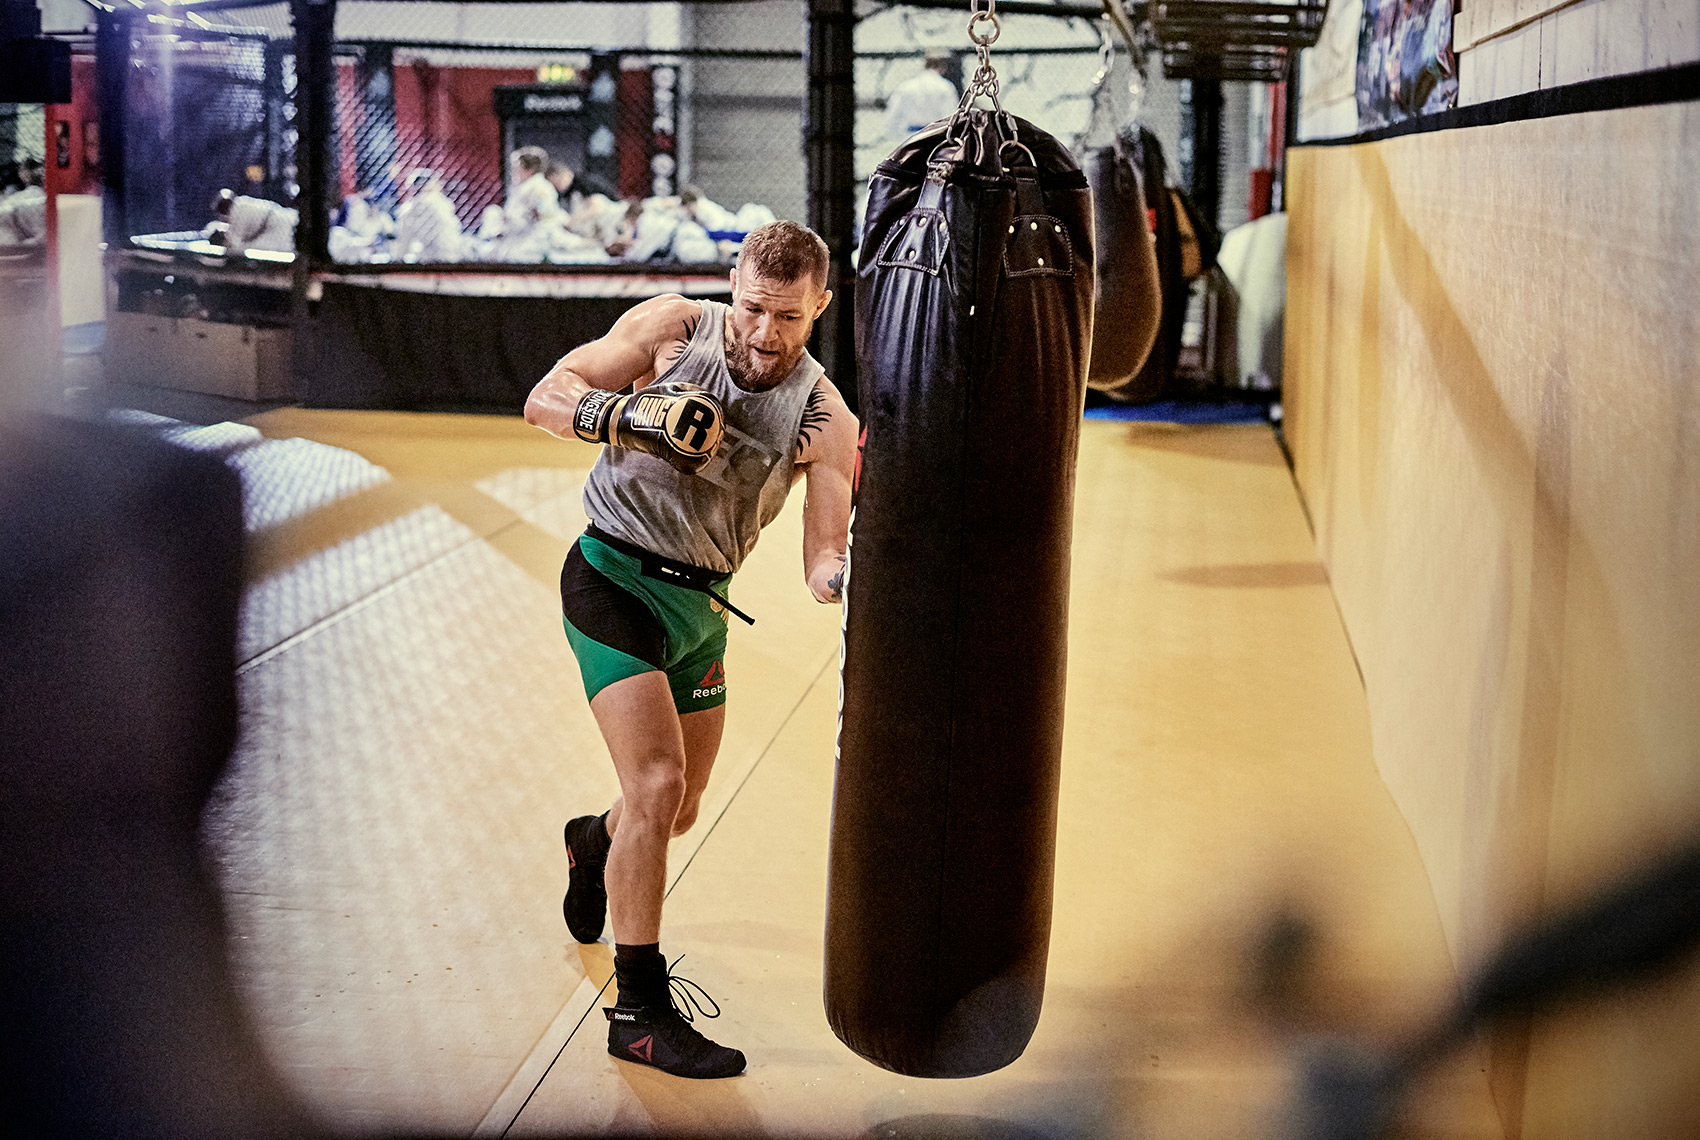 Conor-Mcgregor-Boxing